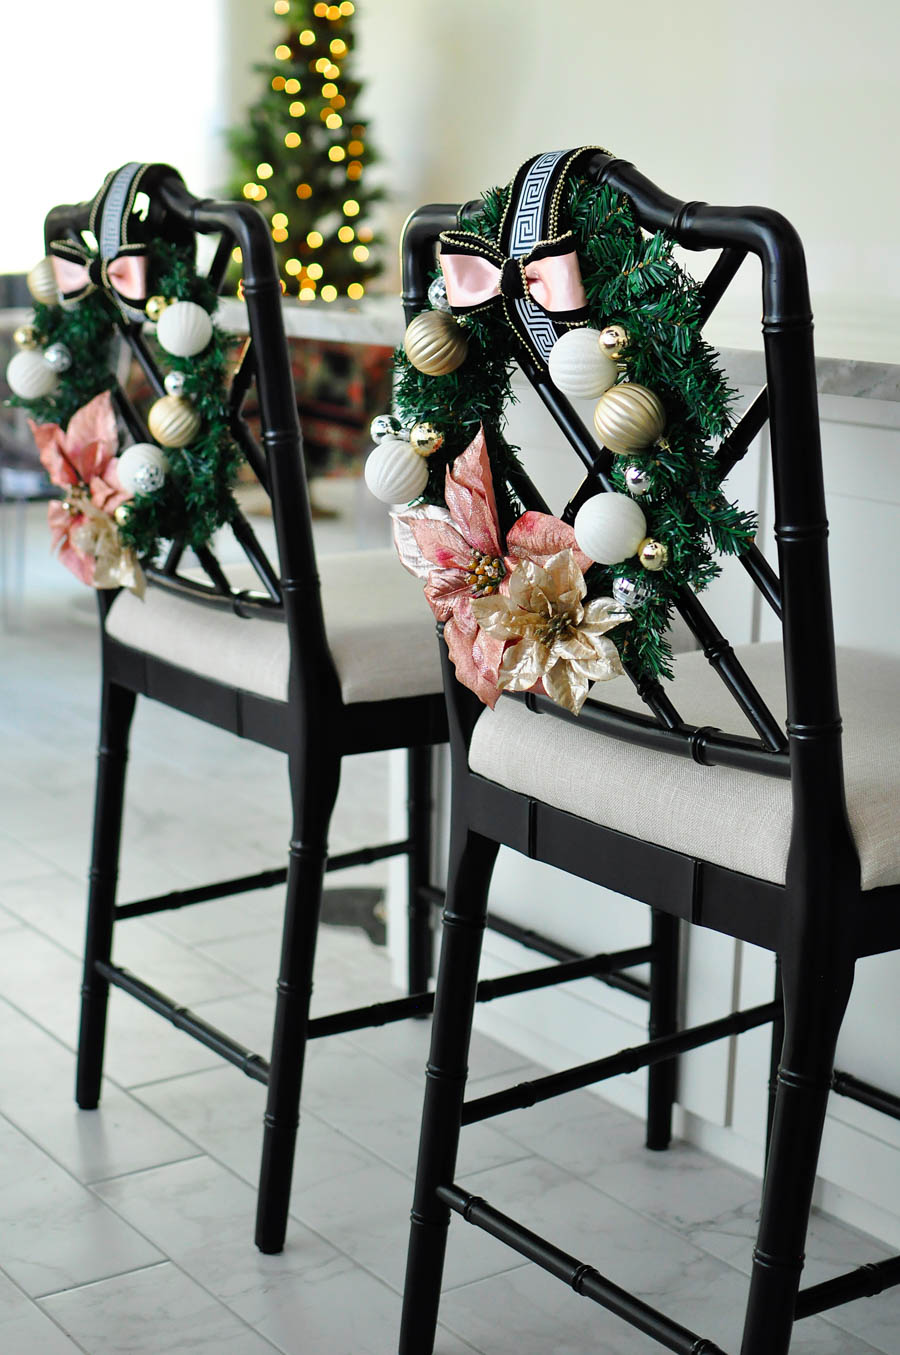 Blush pink chair wreaths with greek key accents look gorgeous on the back of these Dayna chinoiserie counter stools.